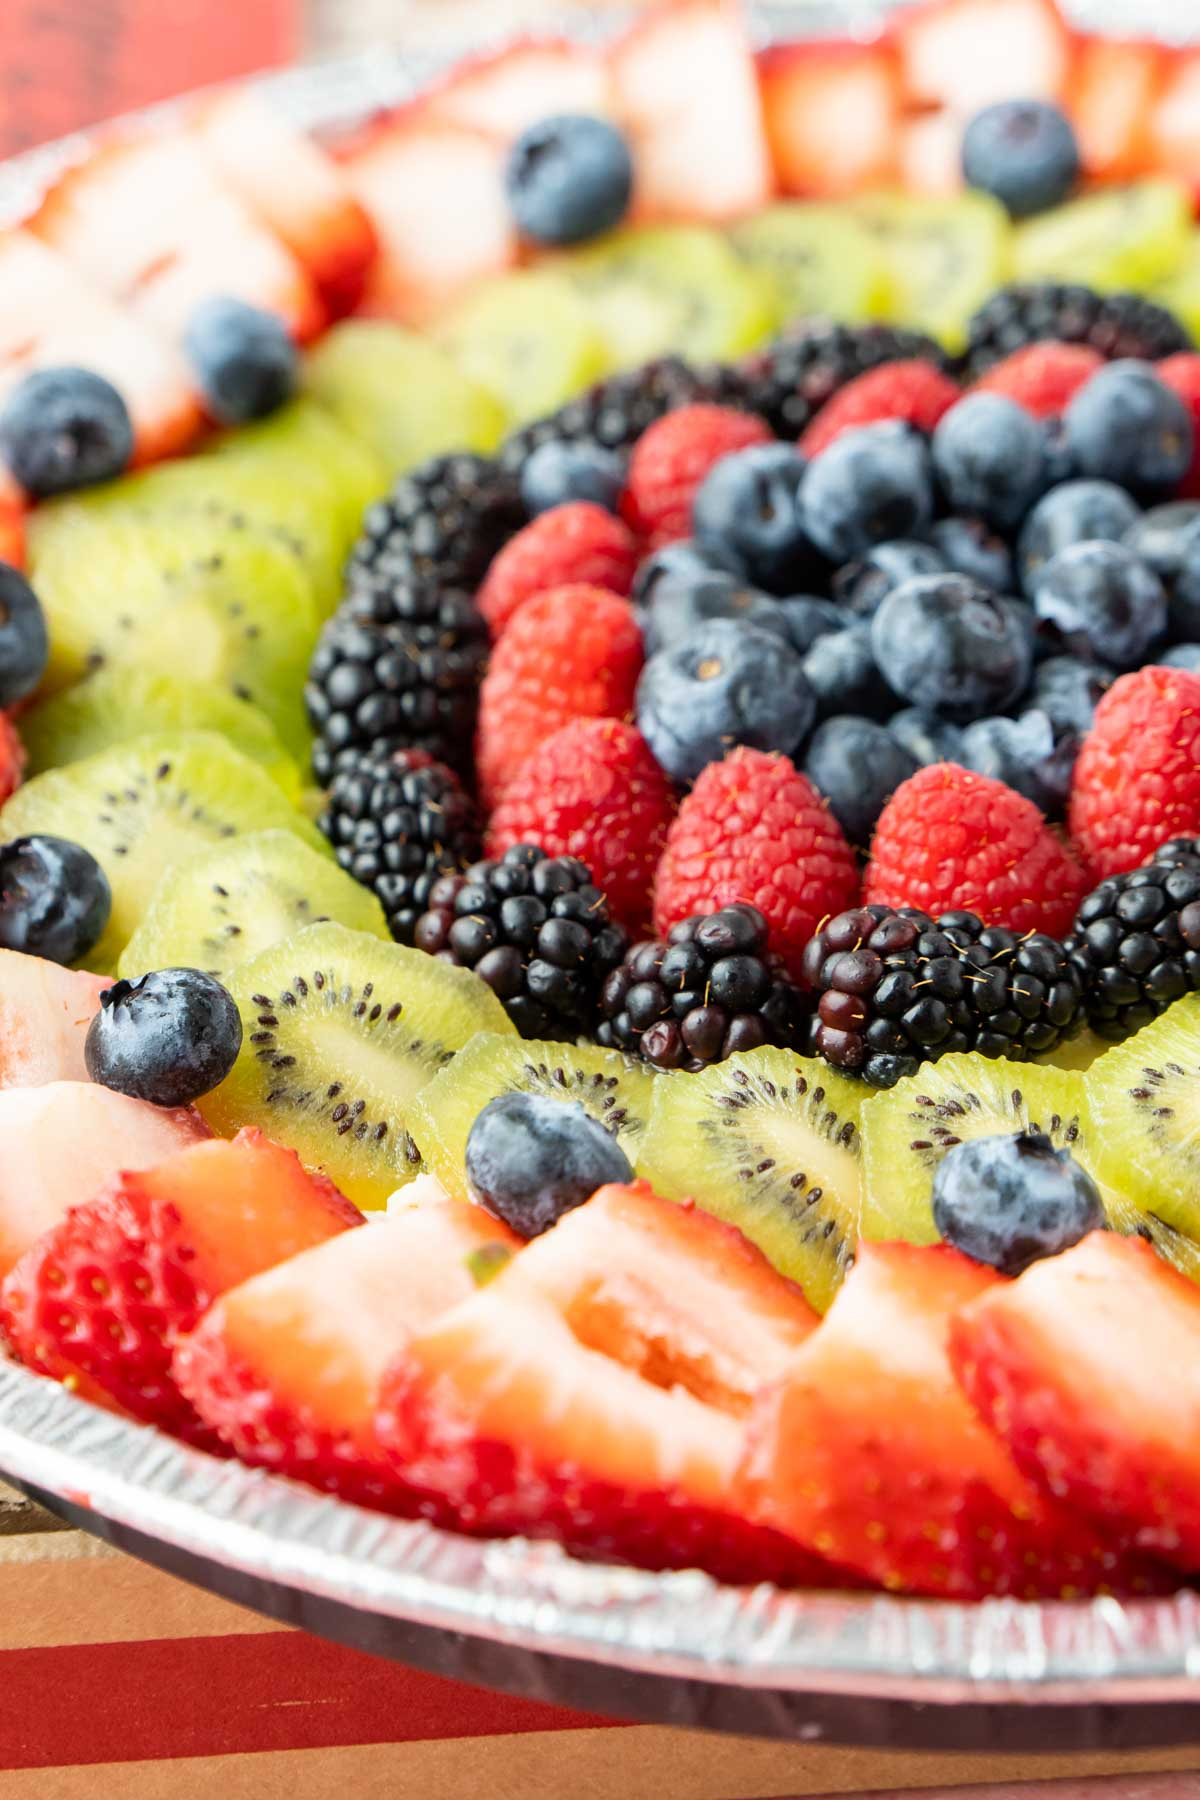 Fruit pizza with strawberries, blueberries, and kiwi